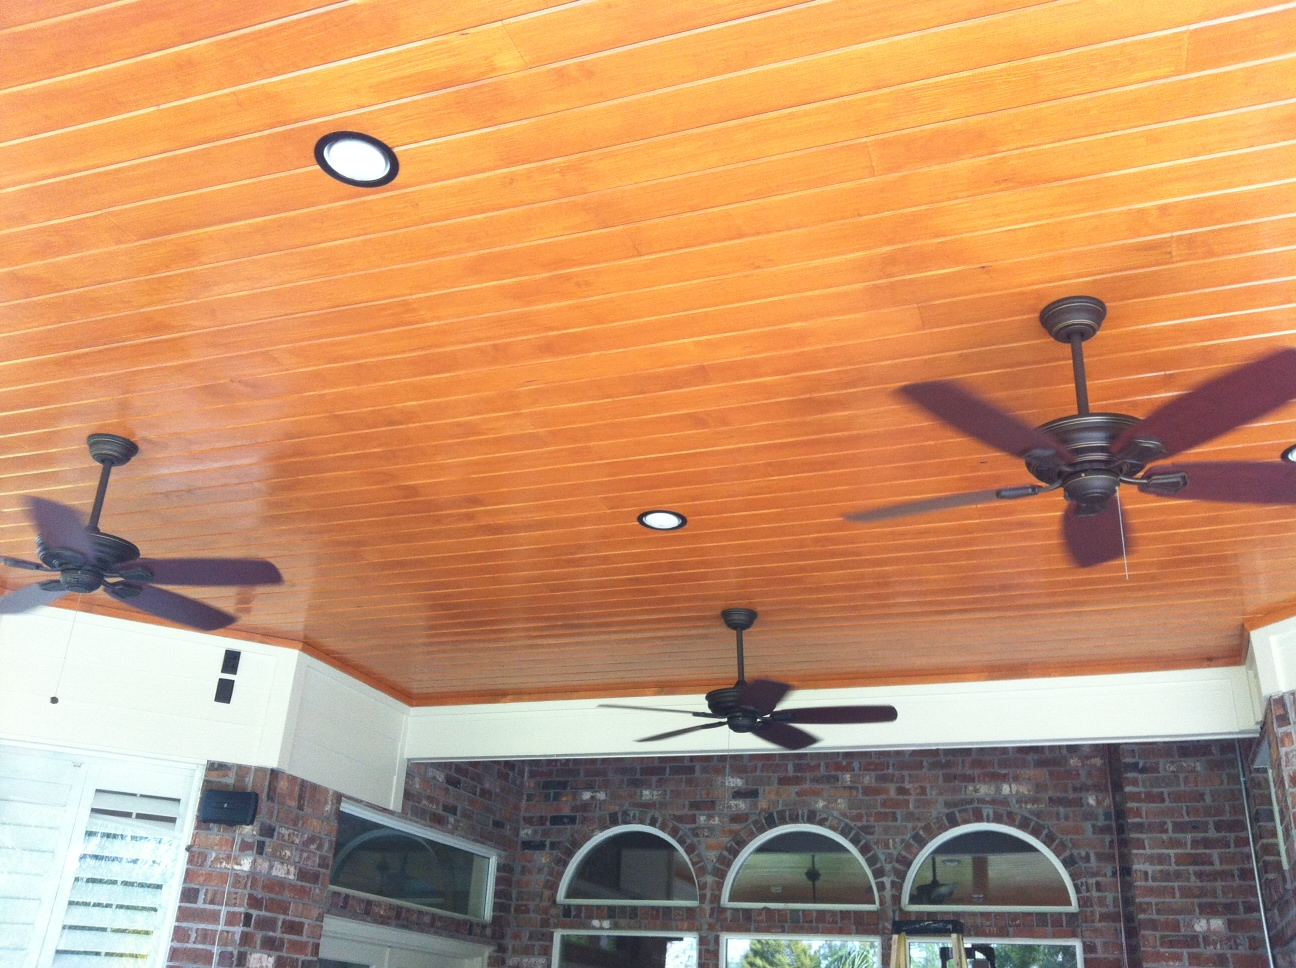 A natural wood ceiling is installed with inset lighting and ceiling fans - a must have in Texas!